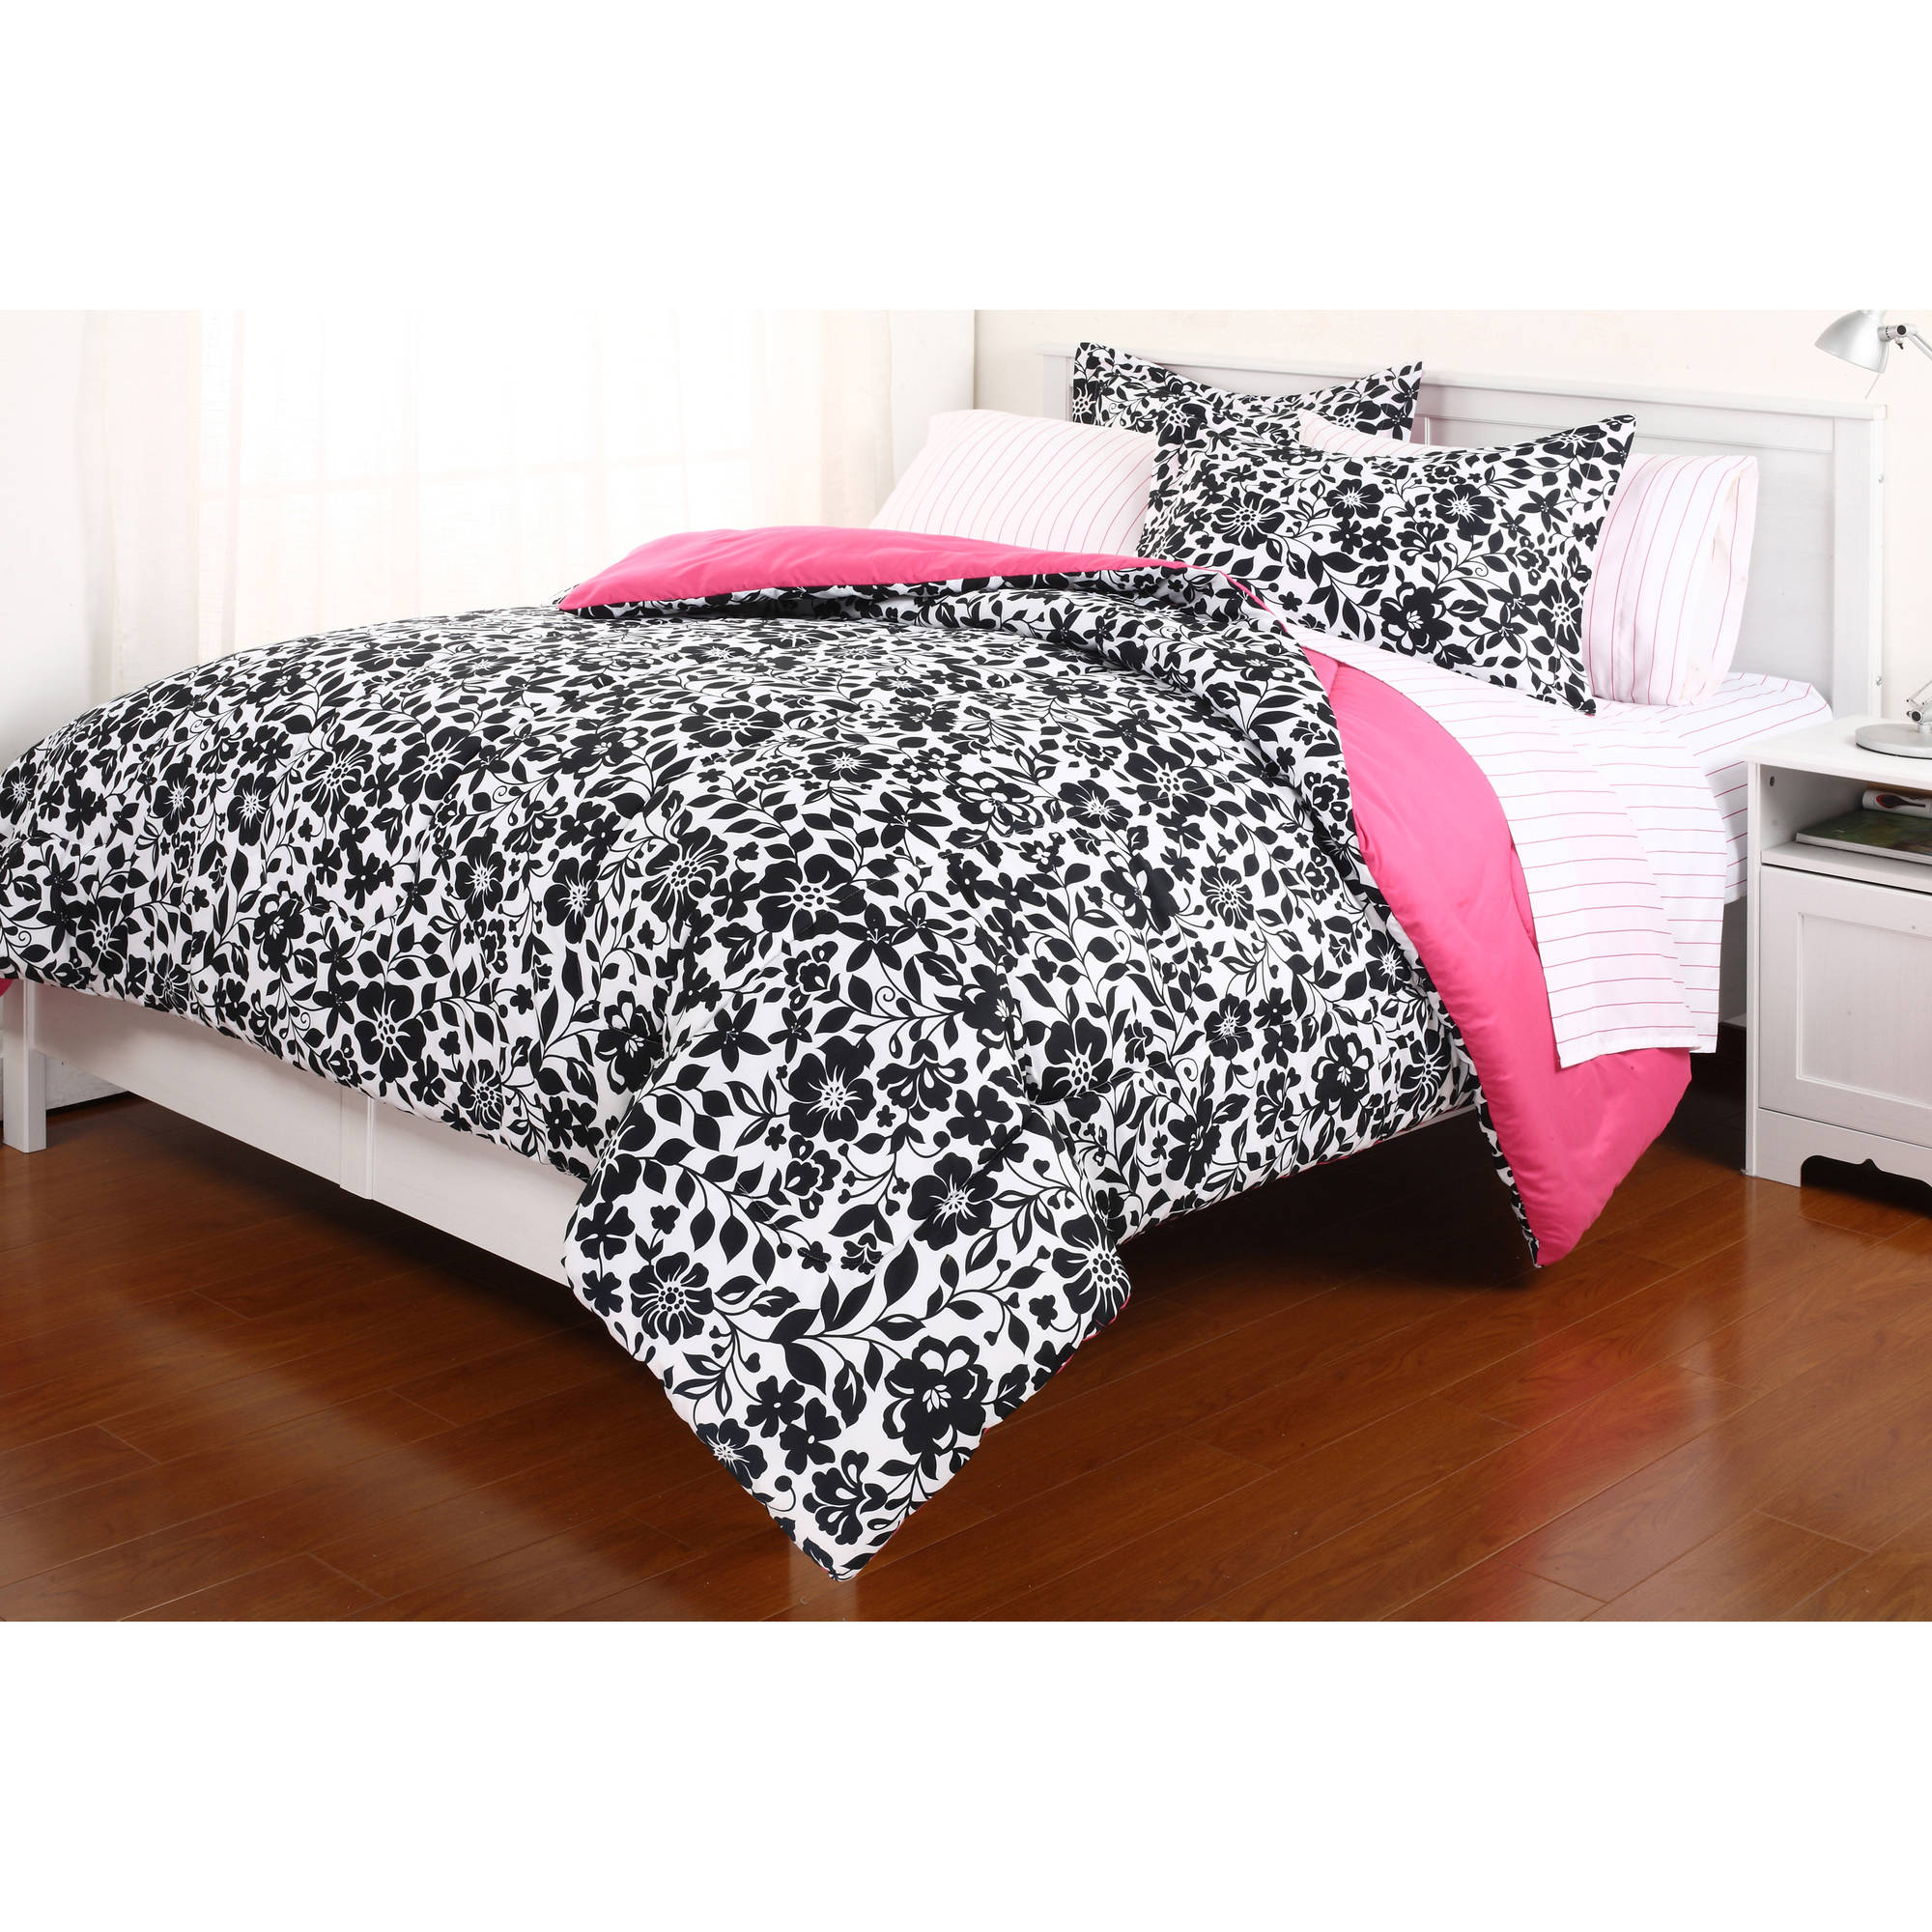 Amelia Reversible Bed in a Bag Bedding Set Walmart